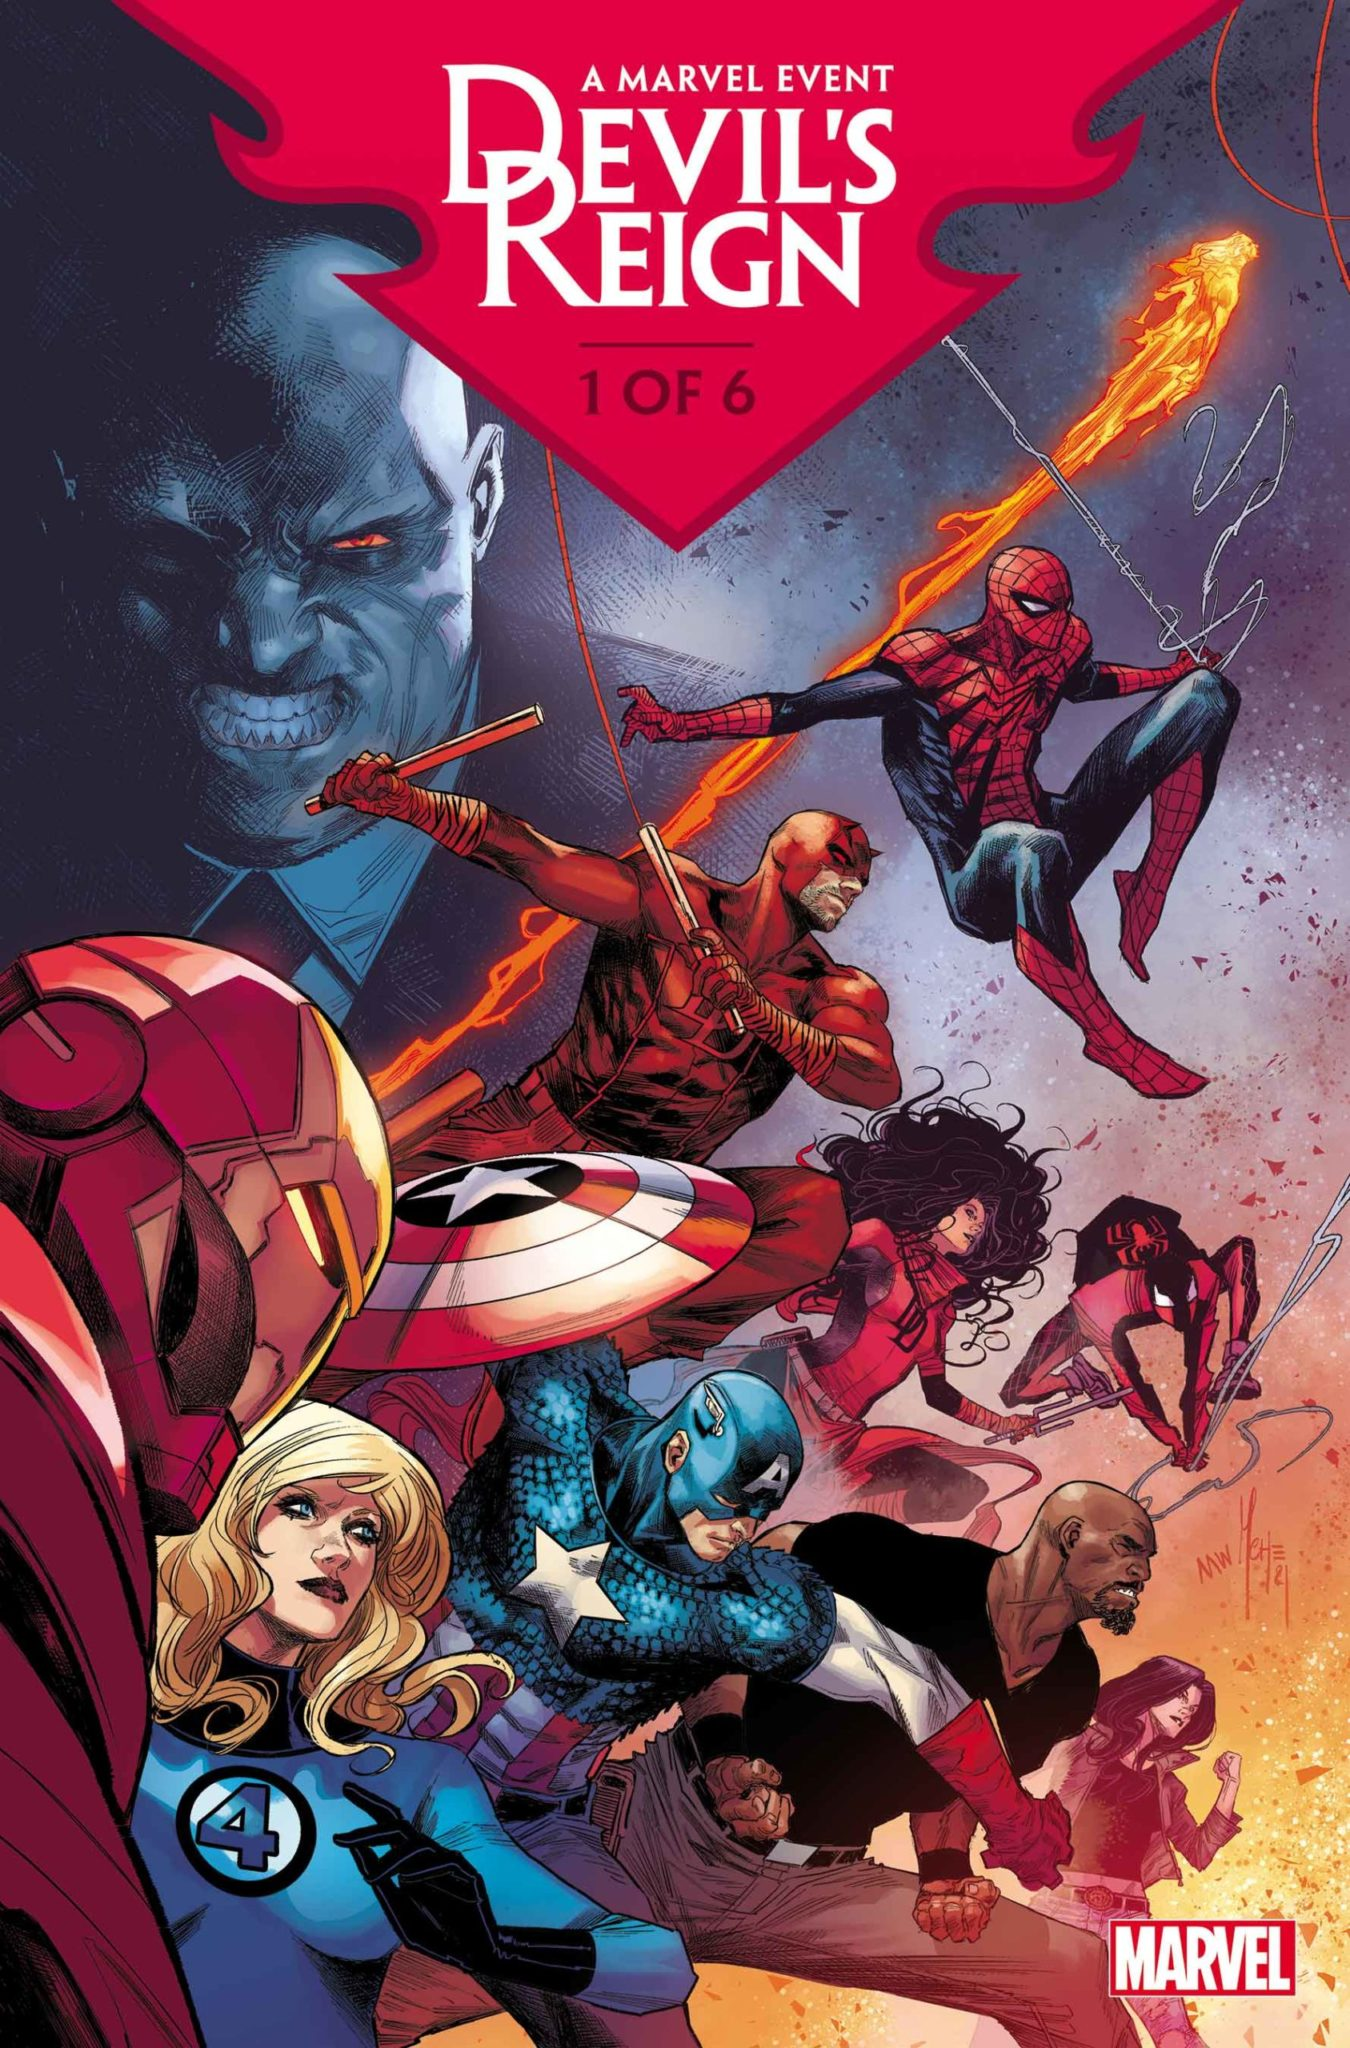 Devil's Reign cover showing Wilson Fisk in the background with heroes like Daredevil and Spider-Man in the foreground.